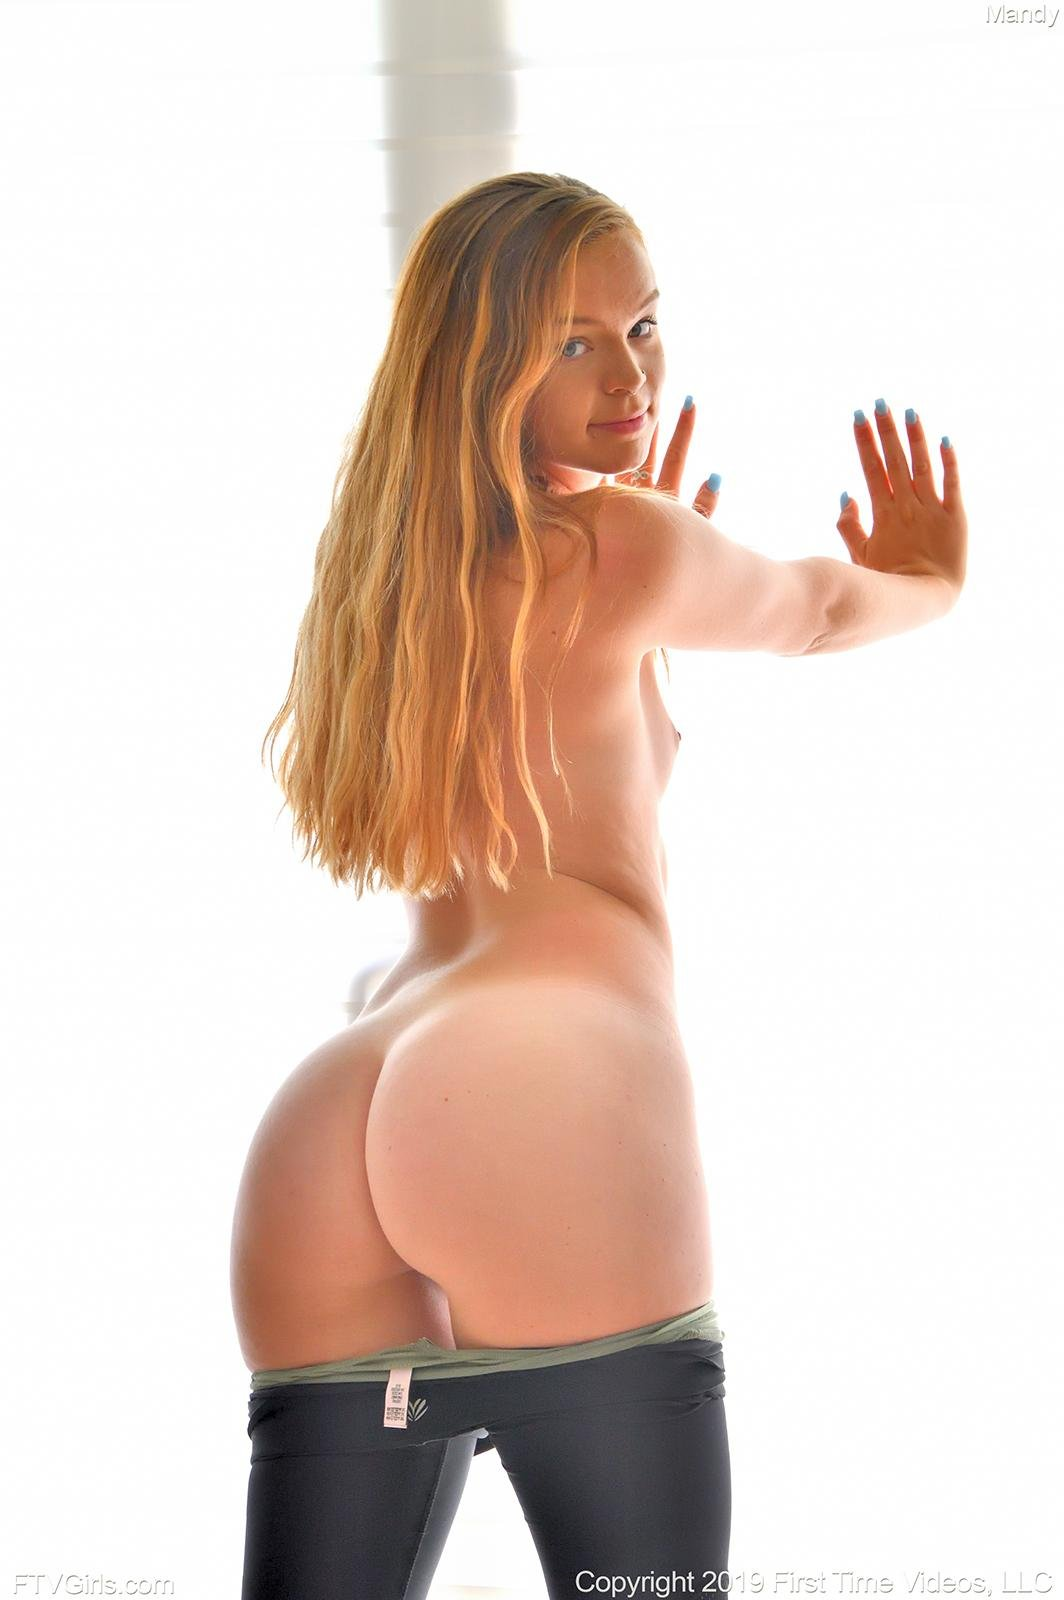 Mandy FTV Nudes And Spreads | Coed Cherry